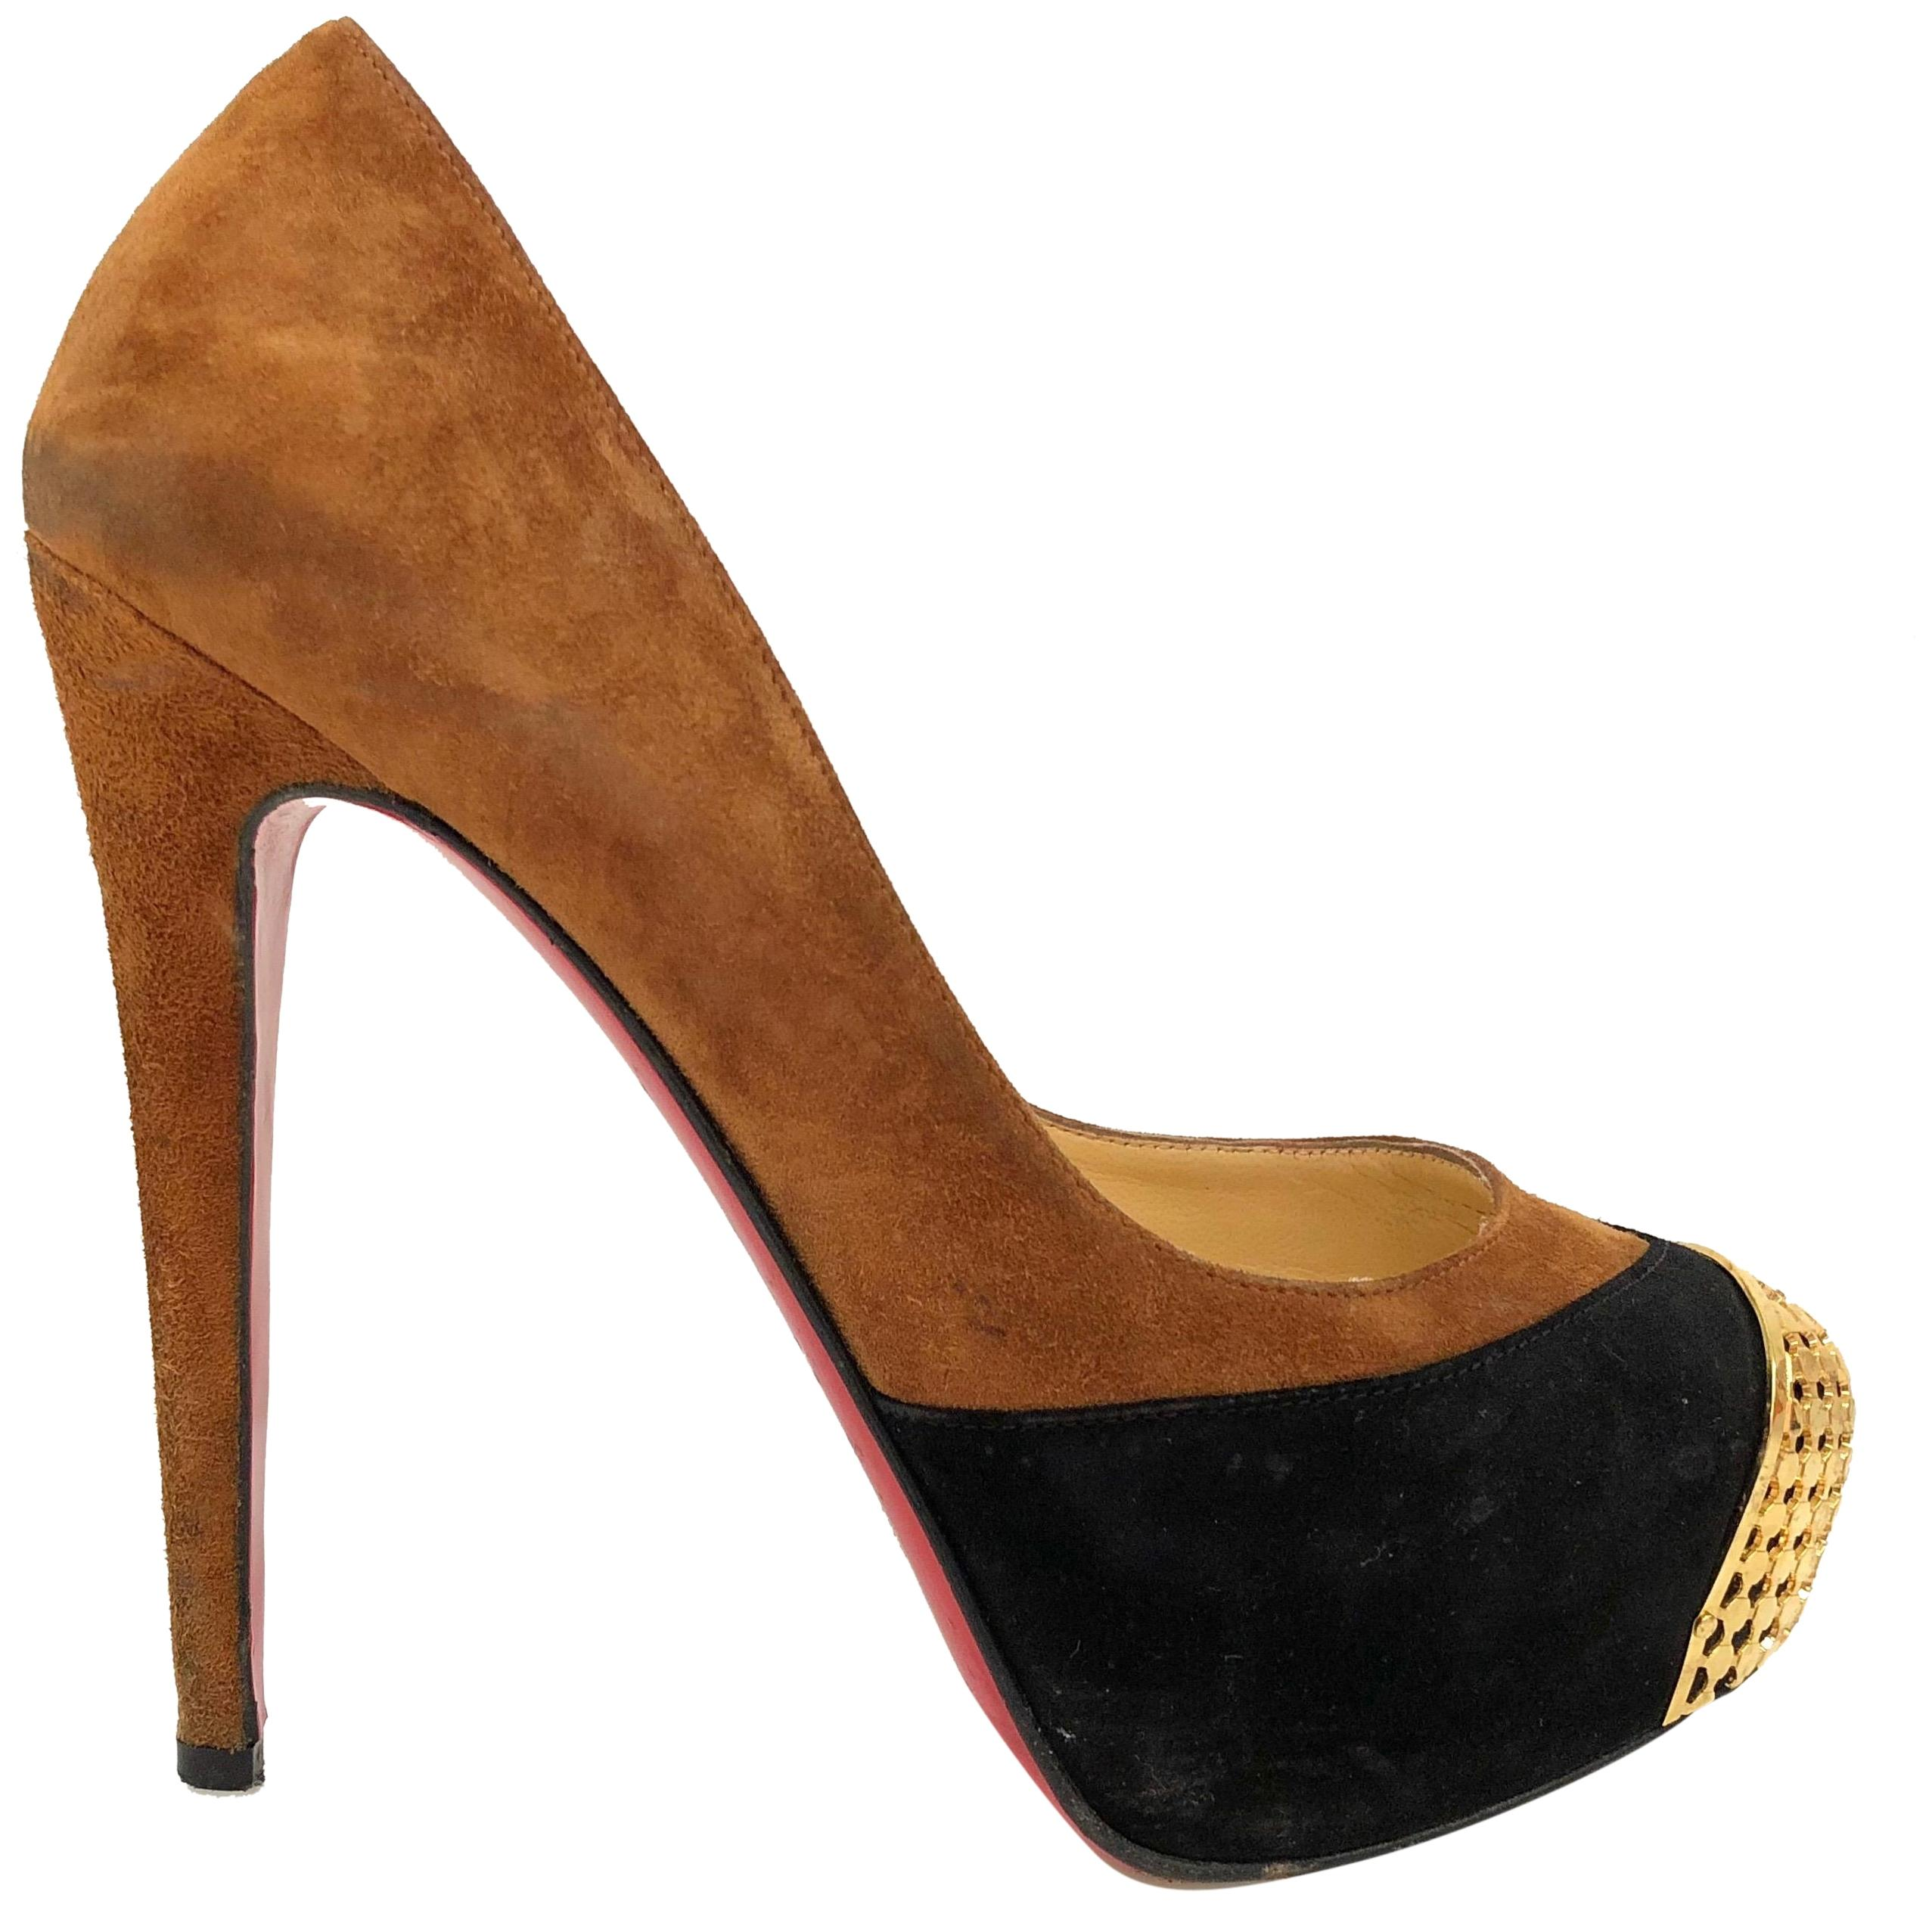 Christian Louboutin Brown/Black Maggie Platform Pumps Size EU 35.5 (Approx. US 5.5) Regular (M, B)